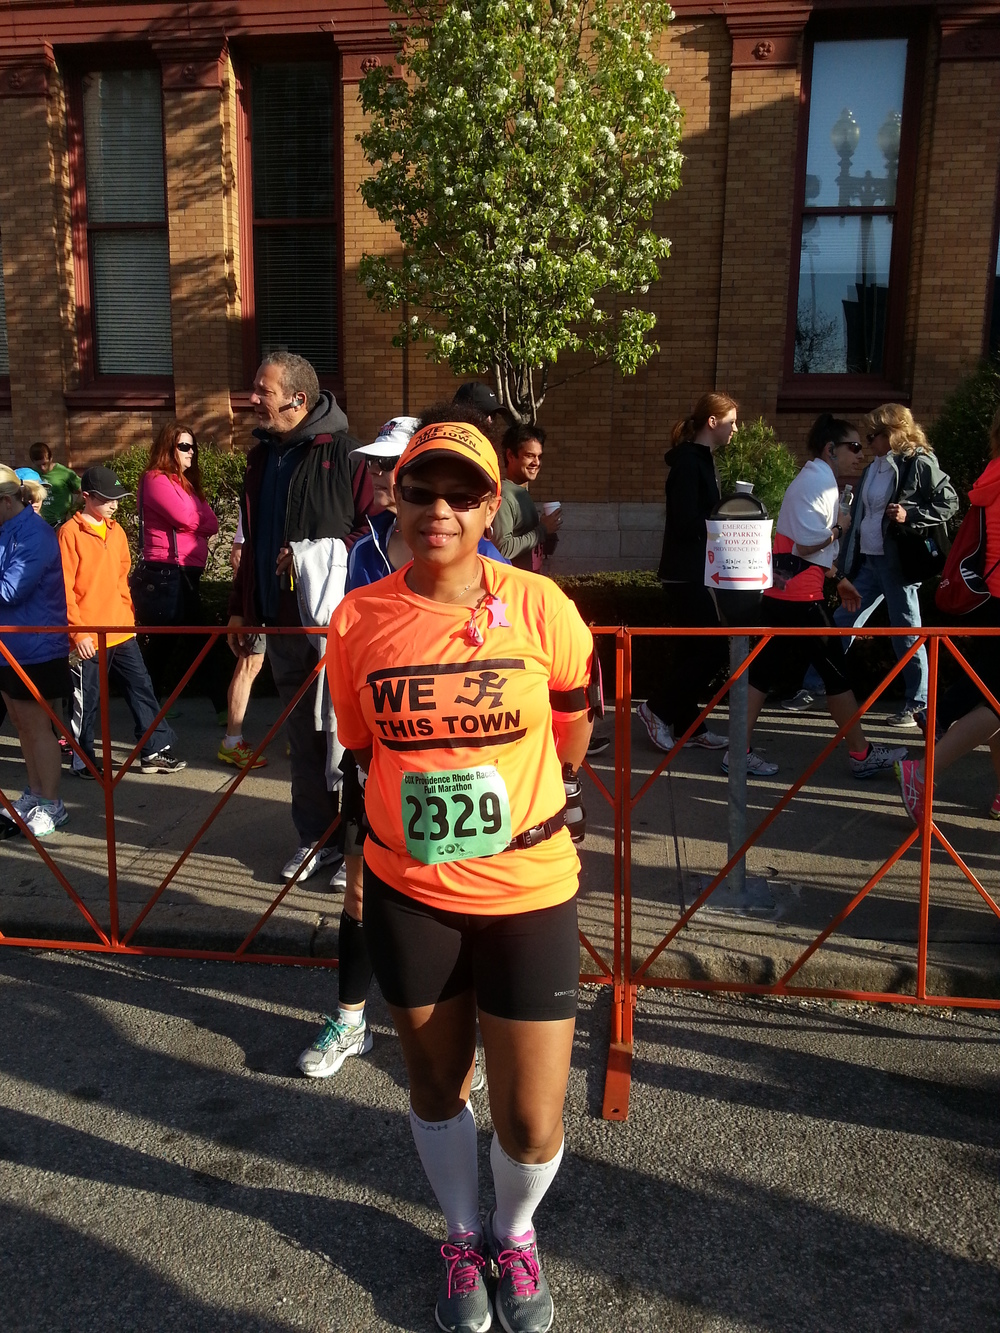 """Nancy """"Smooth"""" Ruffin      Health & Wellness Support coordinator    5K's, 5 milers, 10K's, Half Marathons and a Full Marathon. A former fitness/aerobics instructor of 6 years.    Captain Responsibilities:  Provide nutrition and exercises information. Assist and support members as a pace mentor when they transition to jogging from walking.   Today, 30 pounds lighter and many miles under my feetI now work for Weight Watchers International and run whenever I can. I have incorporated into my life healthy eating habits and running my town and willing to run yours. Come join me and the positive, energetic and supportive members of We Run This Townand never run alone again.   contact me at neruffin@verizon.net (or click on my name)"""